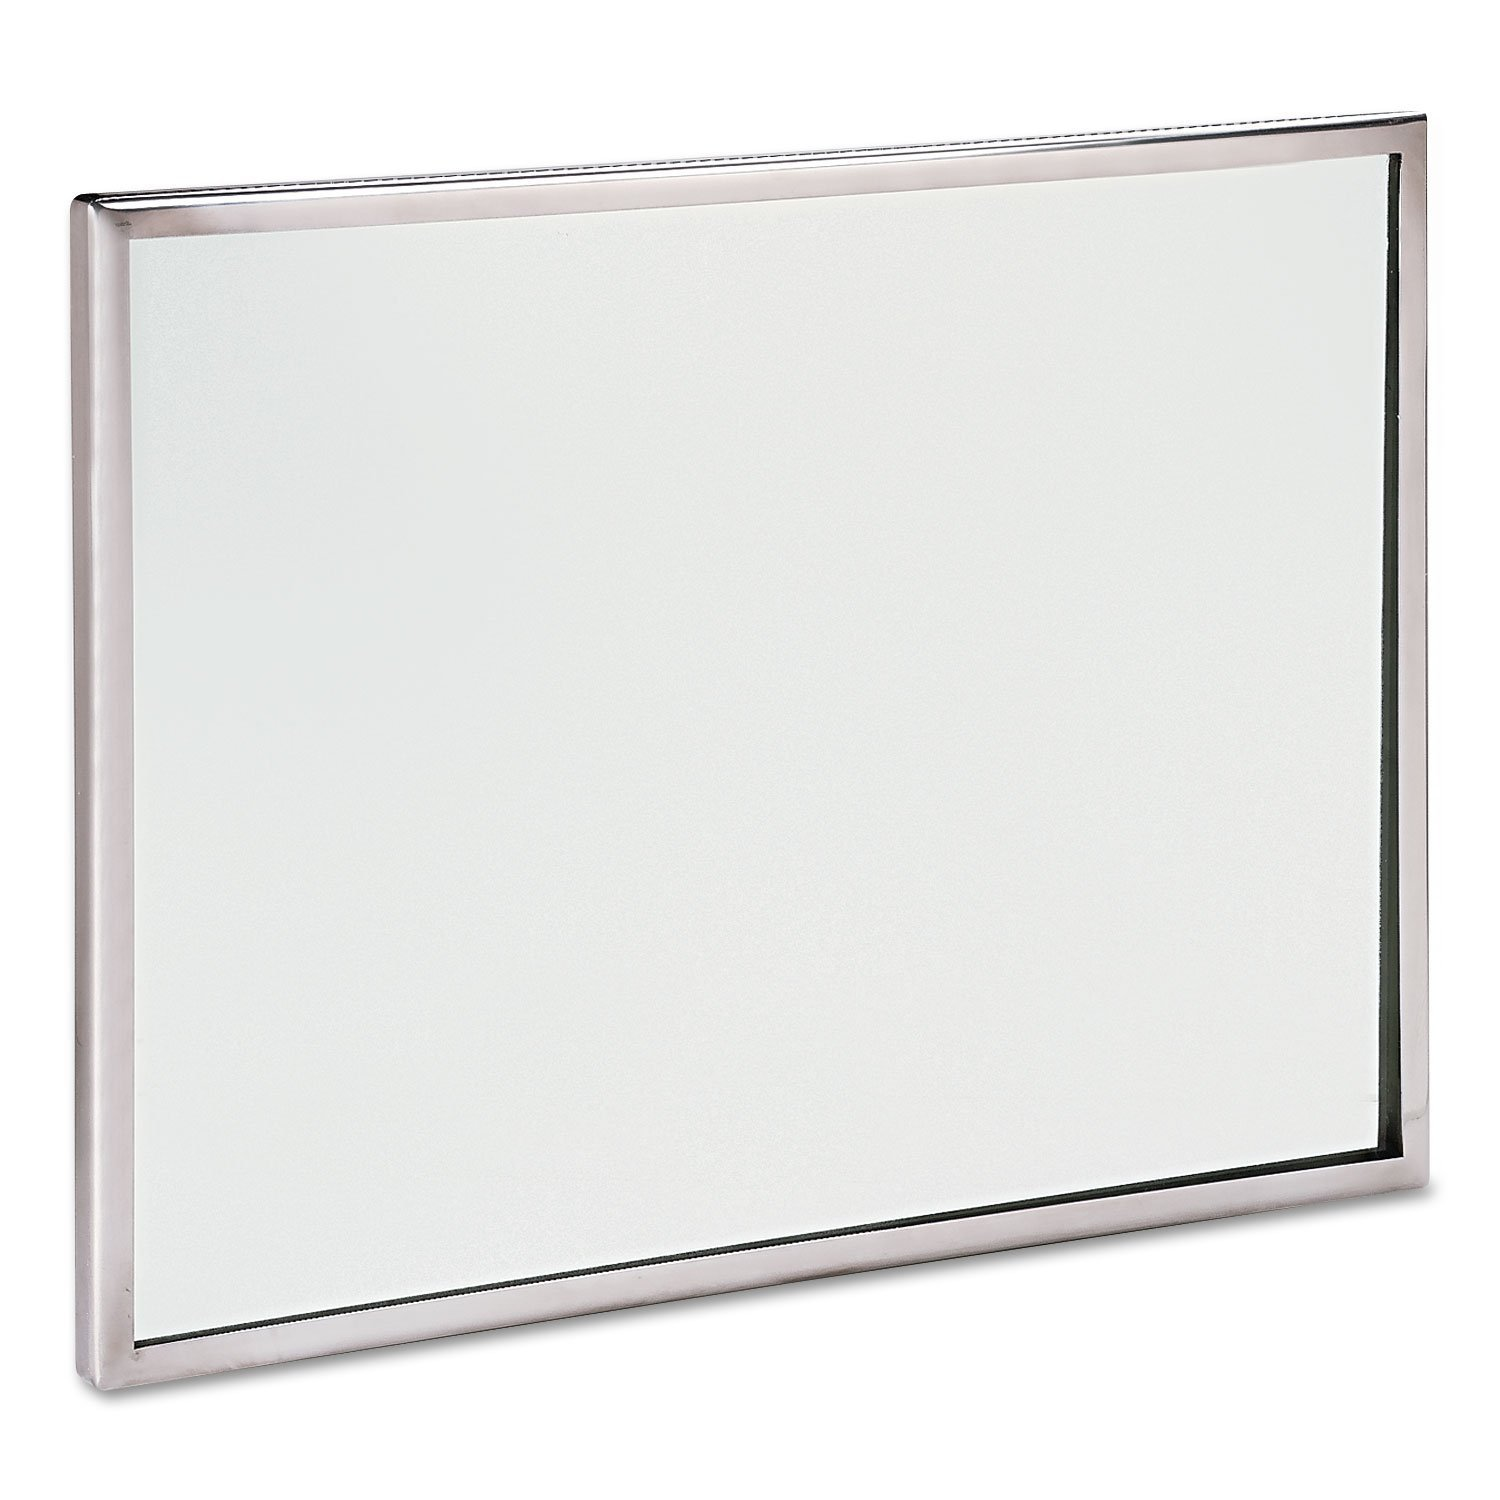 Amazon.com: See All FR1824 Lavatory Mirror, Stainless Steel ...